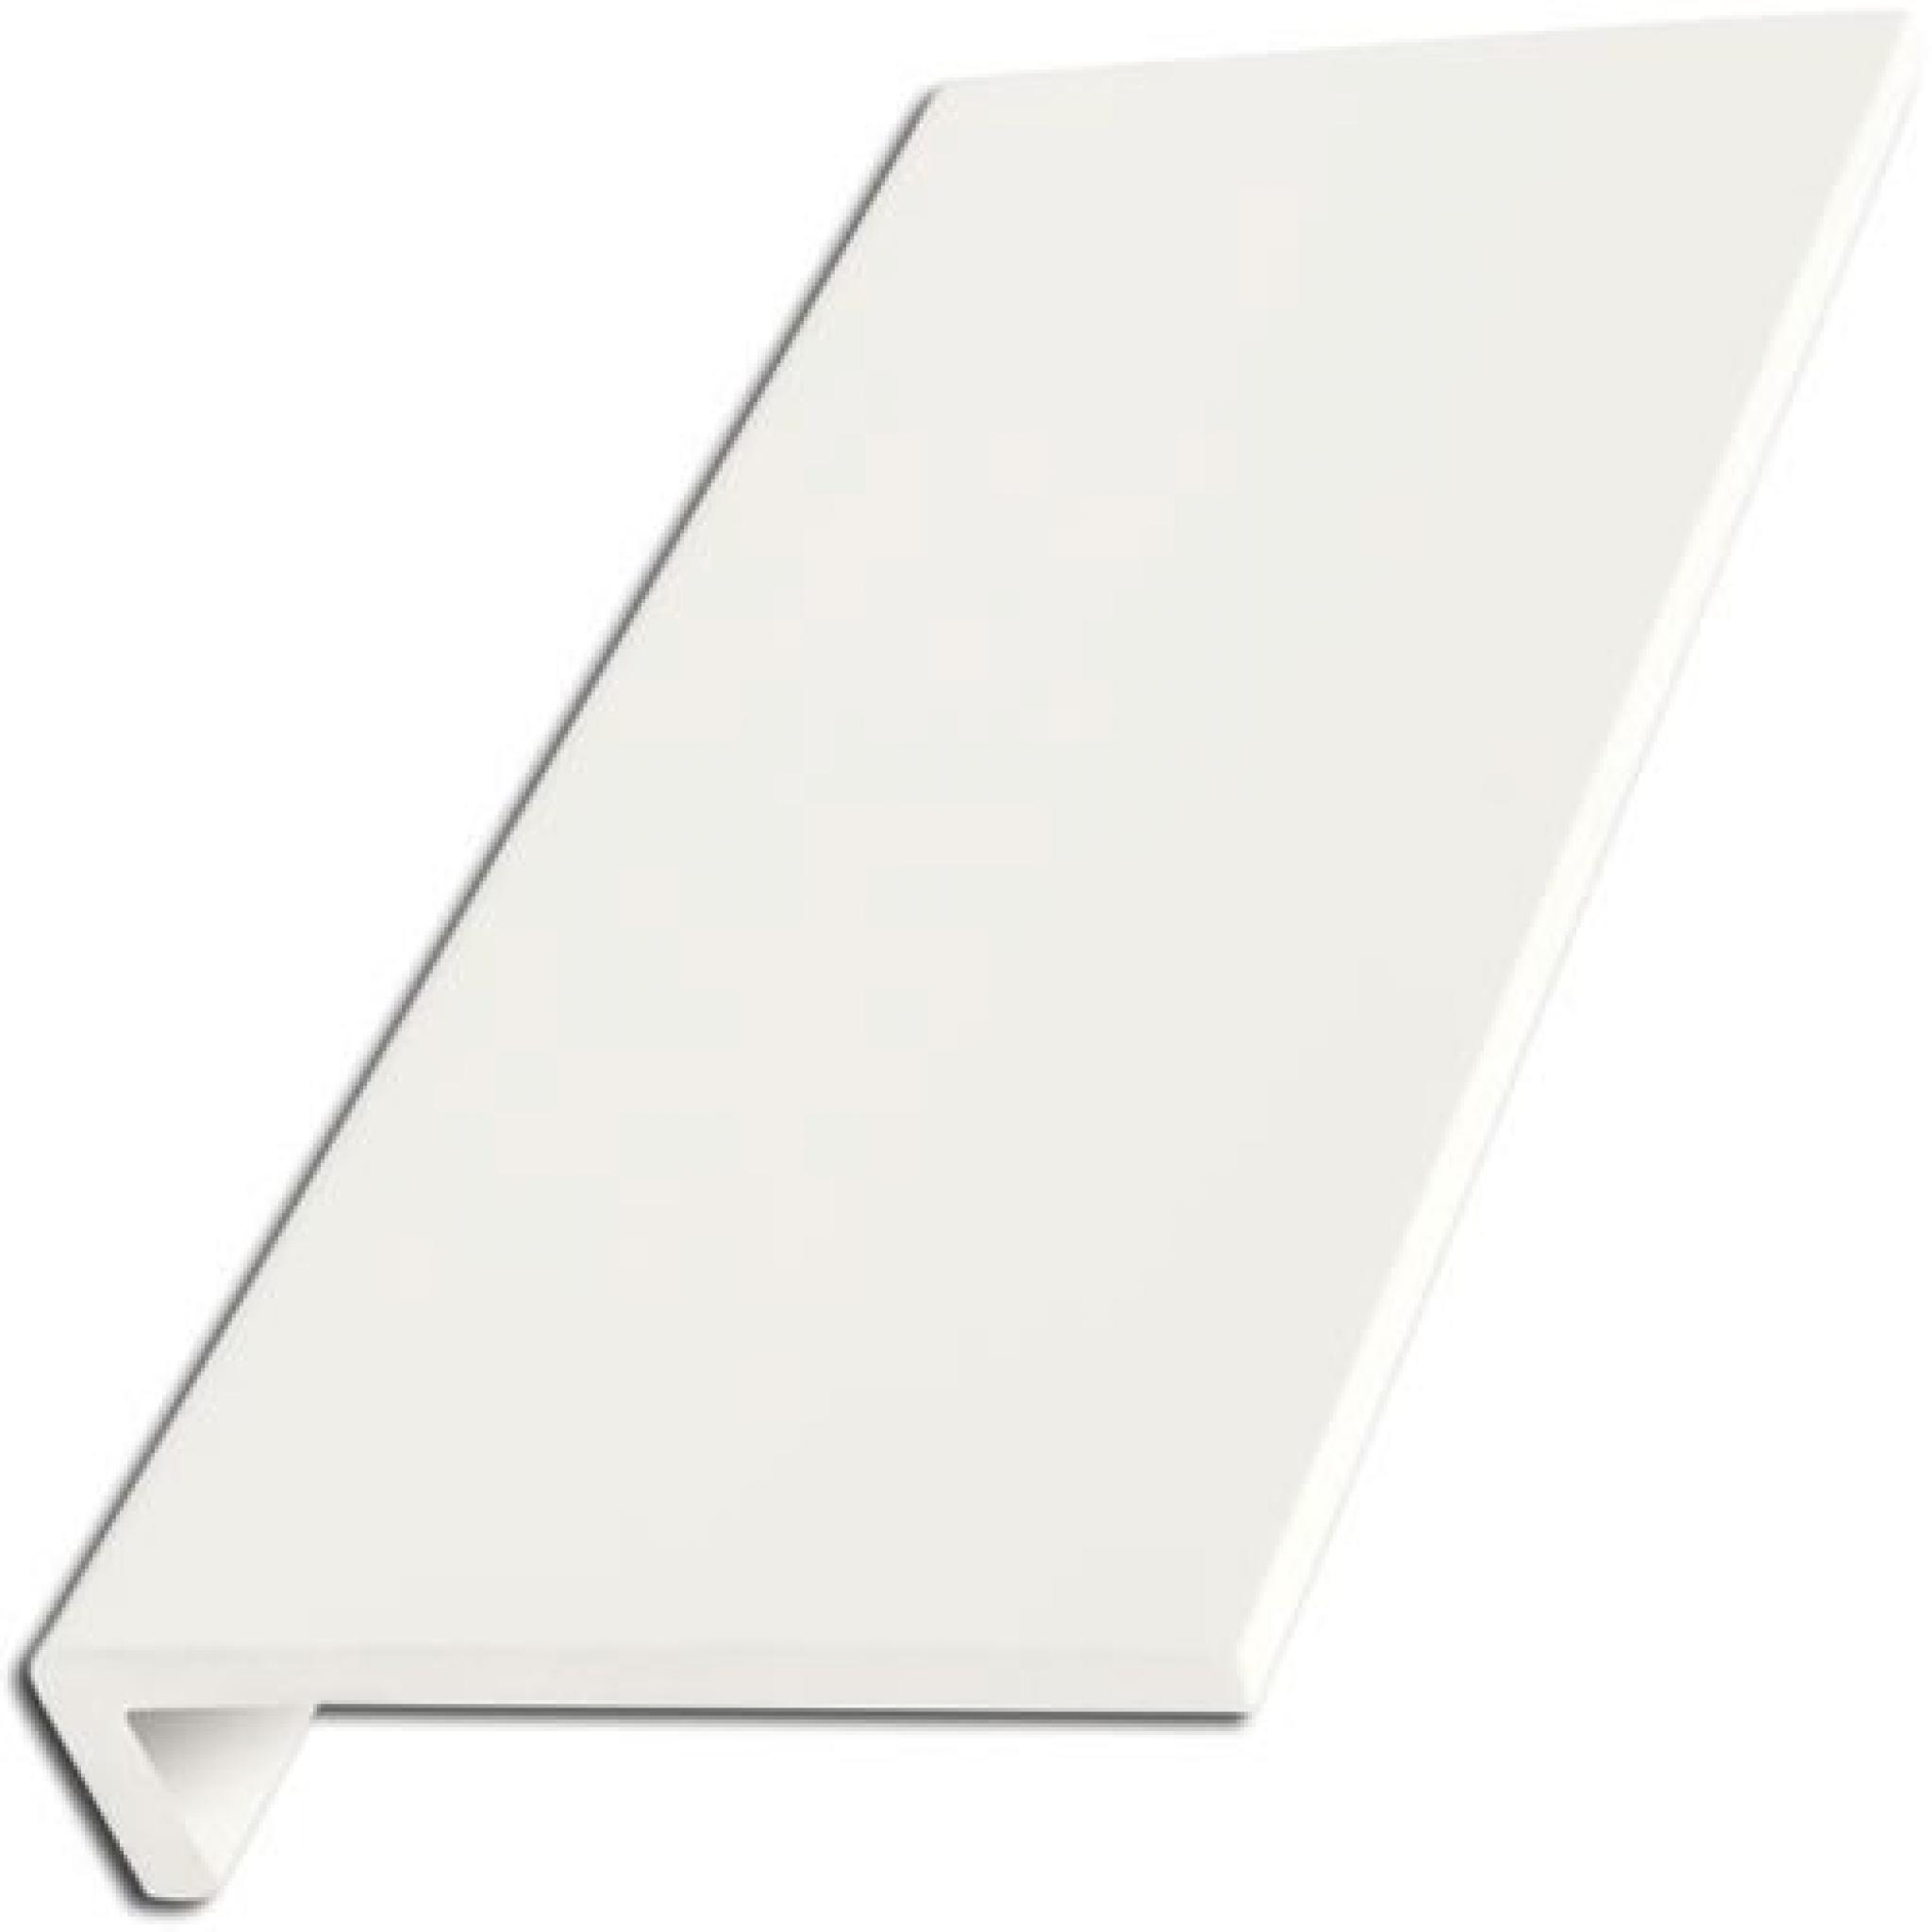 300mm White UPVC Window Board//Cill Cover 2.5m Long 9mm Thick Plastic Window Sill Capping